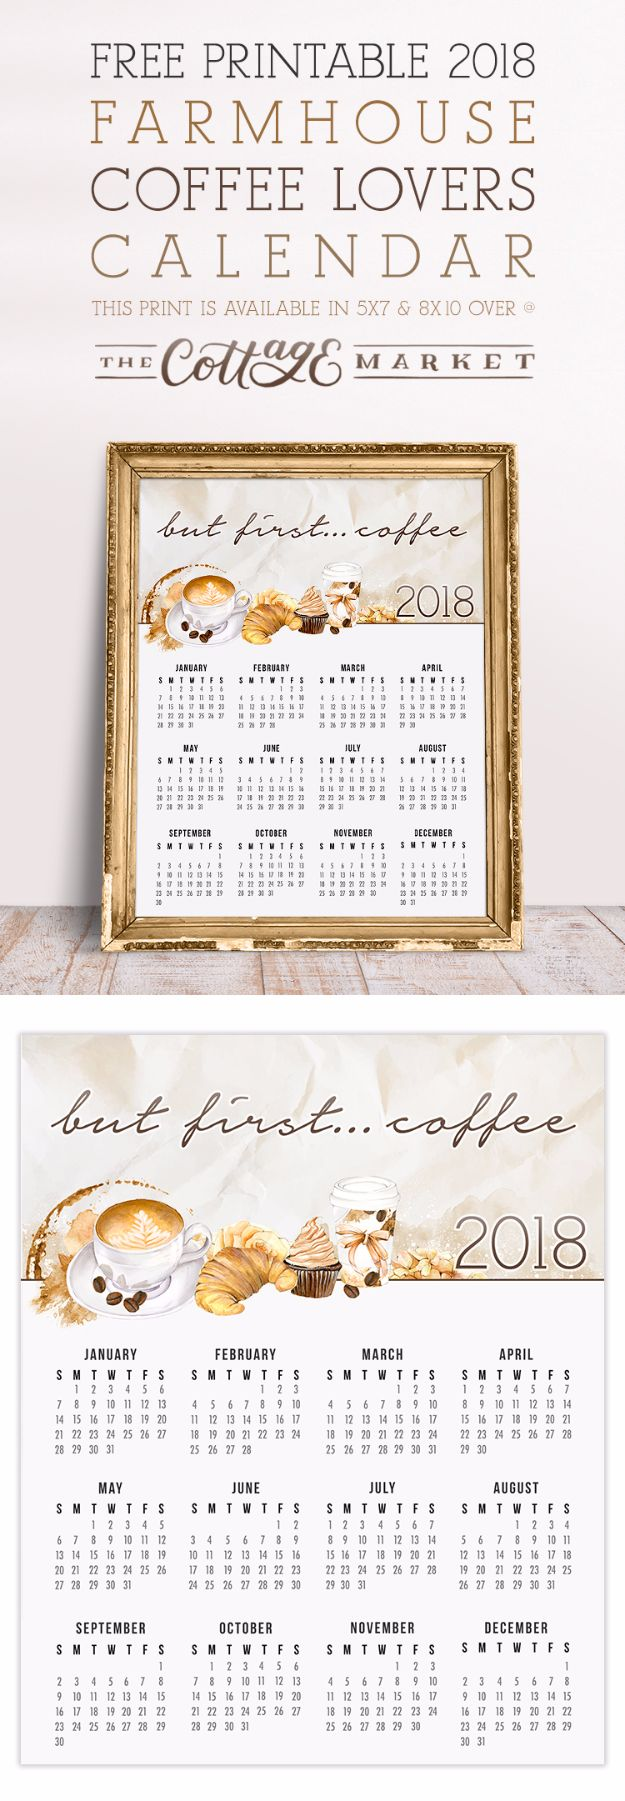 DIY Ideas for The Coffee Lover - Farmhouse Coffee Lover Calendar Free Printable - Easy and Cool Gift Ideas for People Who Love Coffee Drinks - Coaster, Cups and Mugs, Tumblers, Canisters and Do It Yourself Gift Ideas - Gift Jars and Baskets, Fun Presents to Make for Mom, Dad and Friends http://diyjoy.com/diy-ideas-coffee-lover